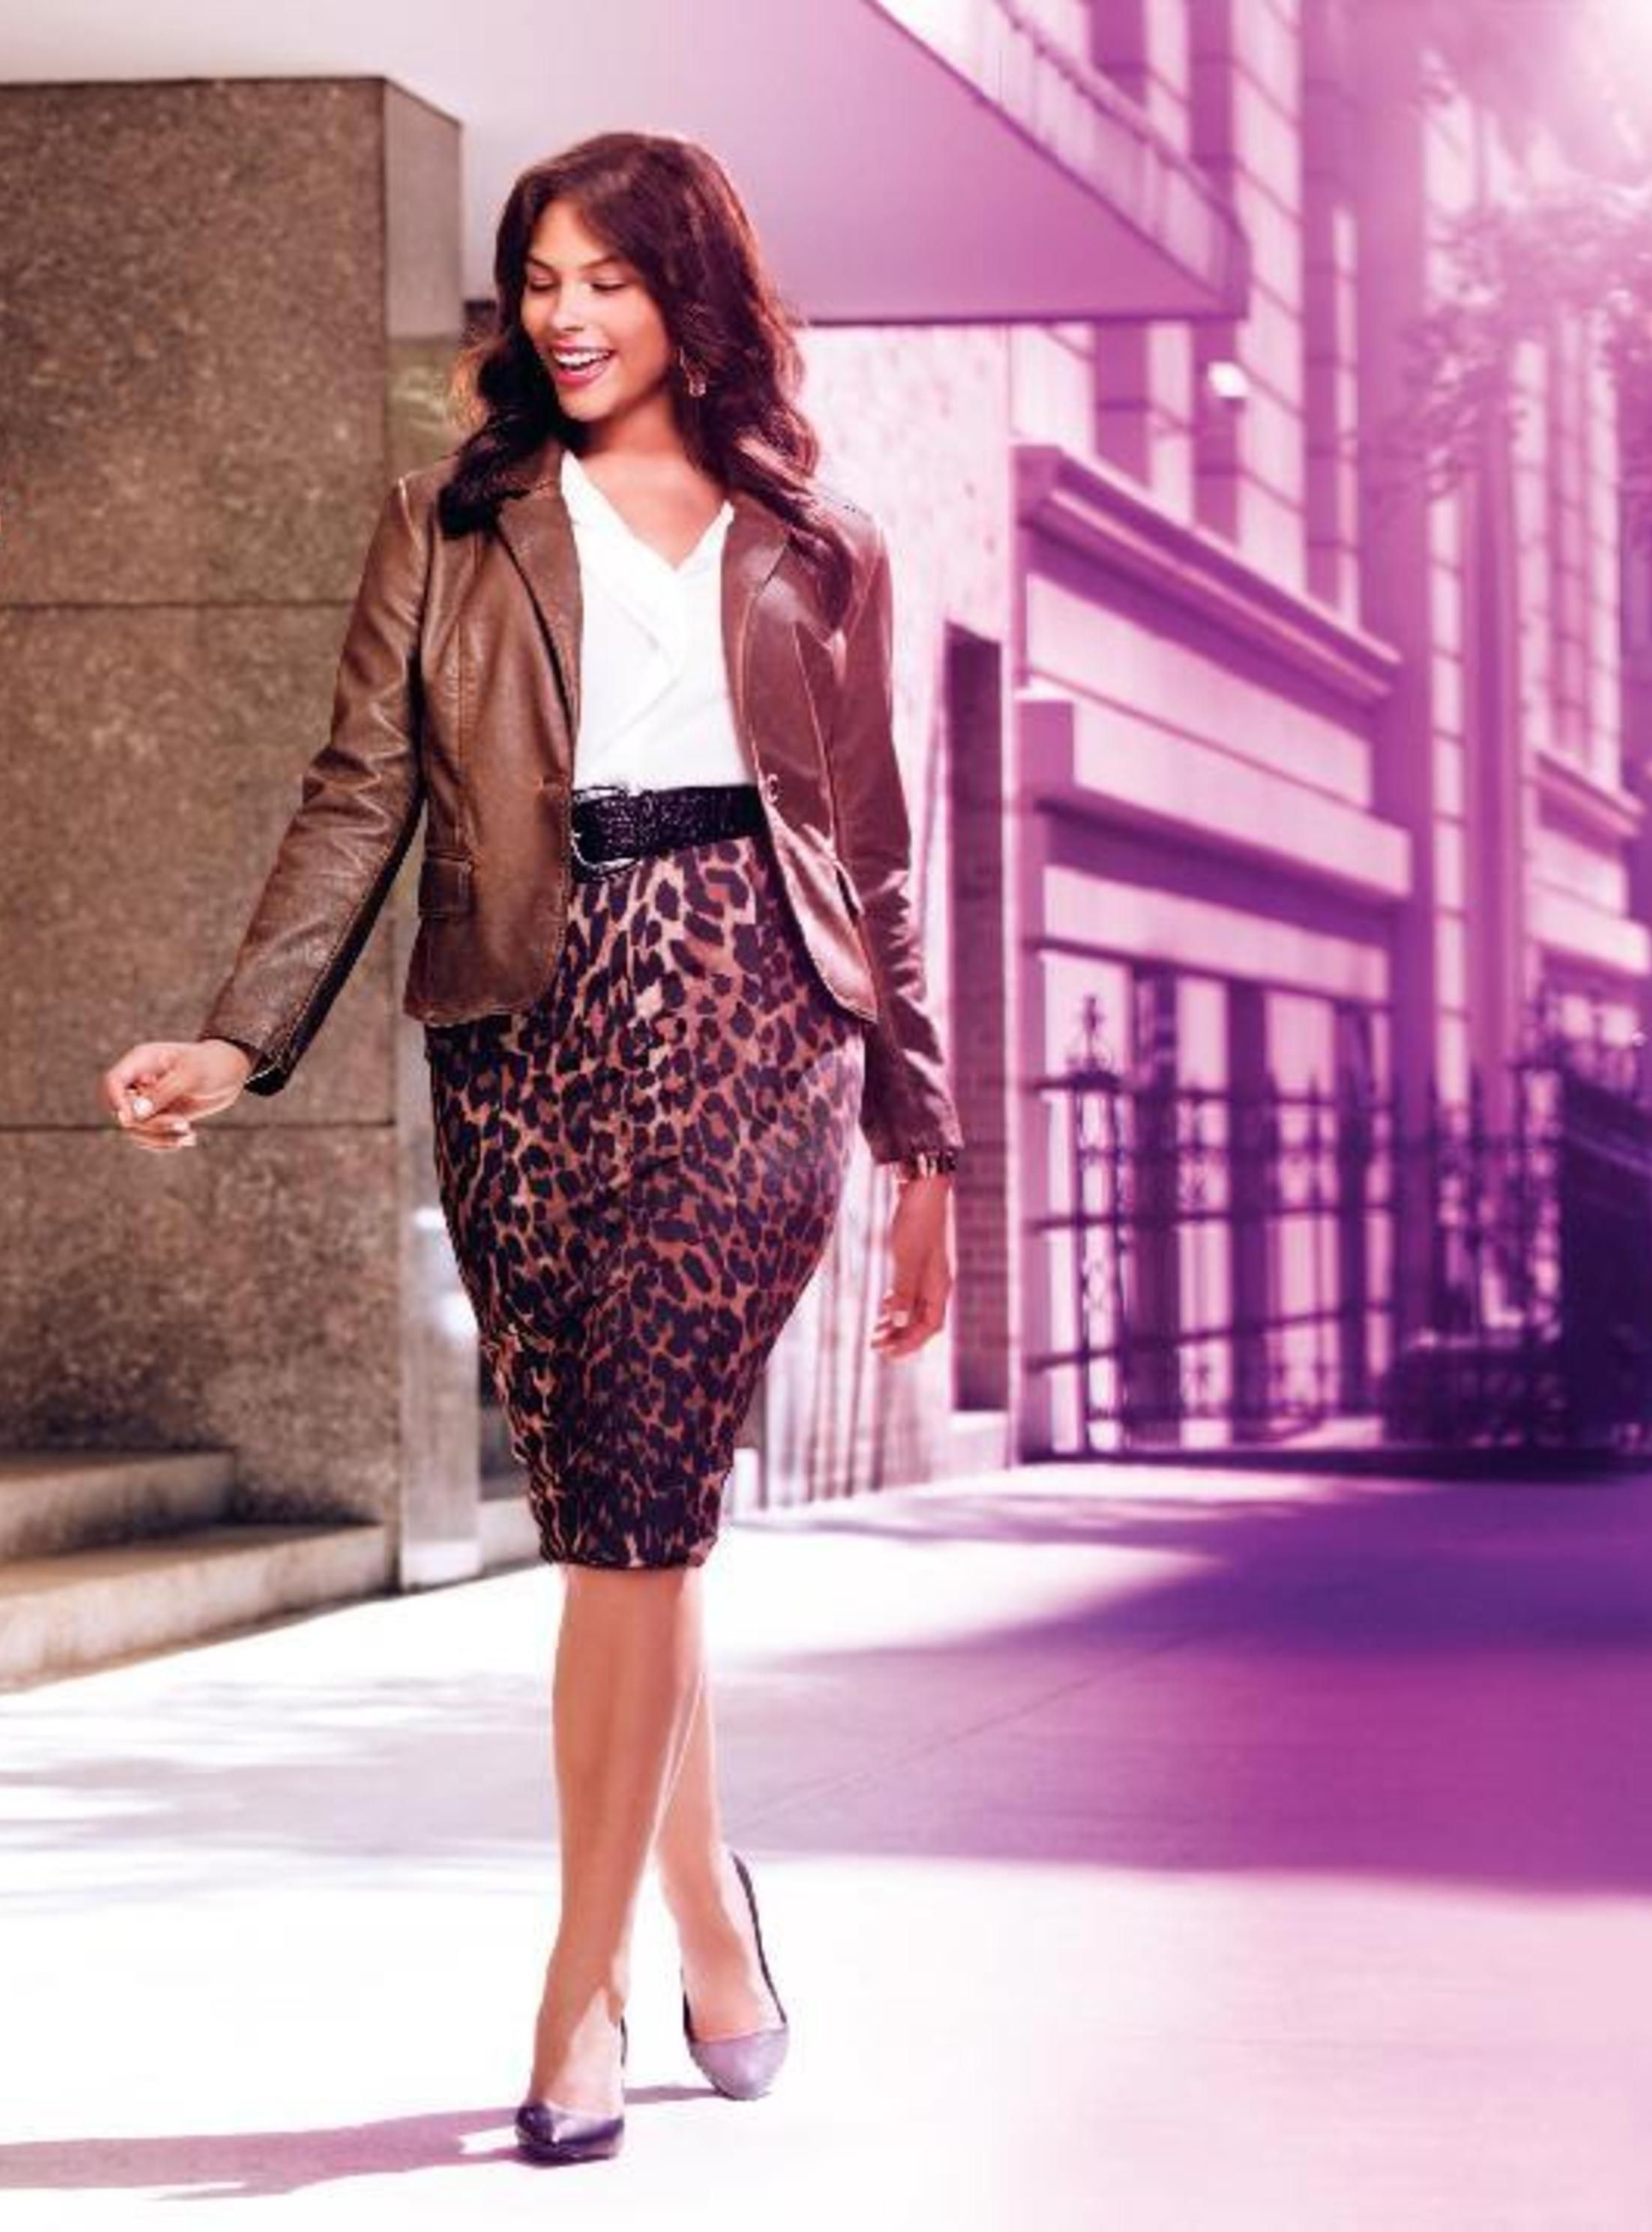 253bce2eb38 Animal Print Mid Length Pencil Skirt.  Lanebryant reinvented the classic pencil  skirt with a bold animal print and longer